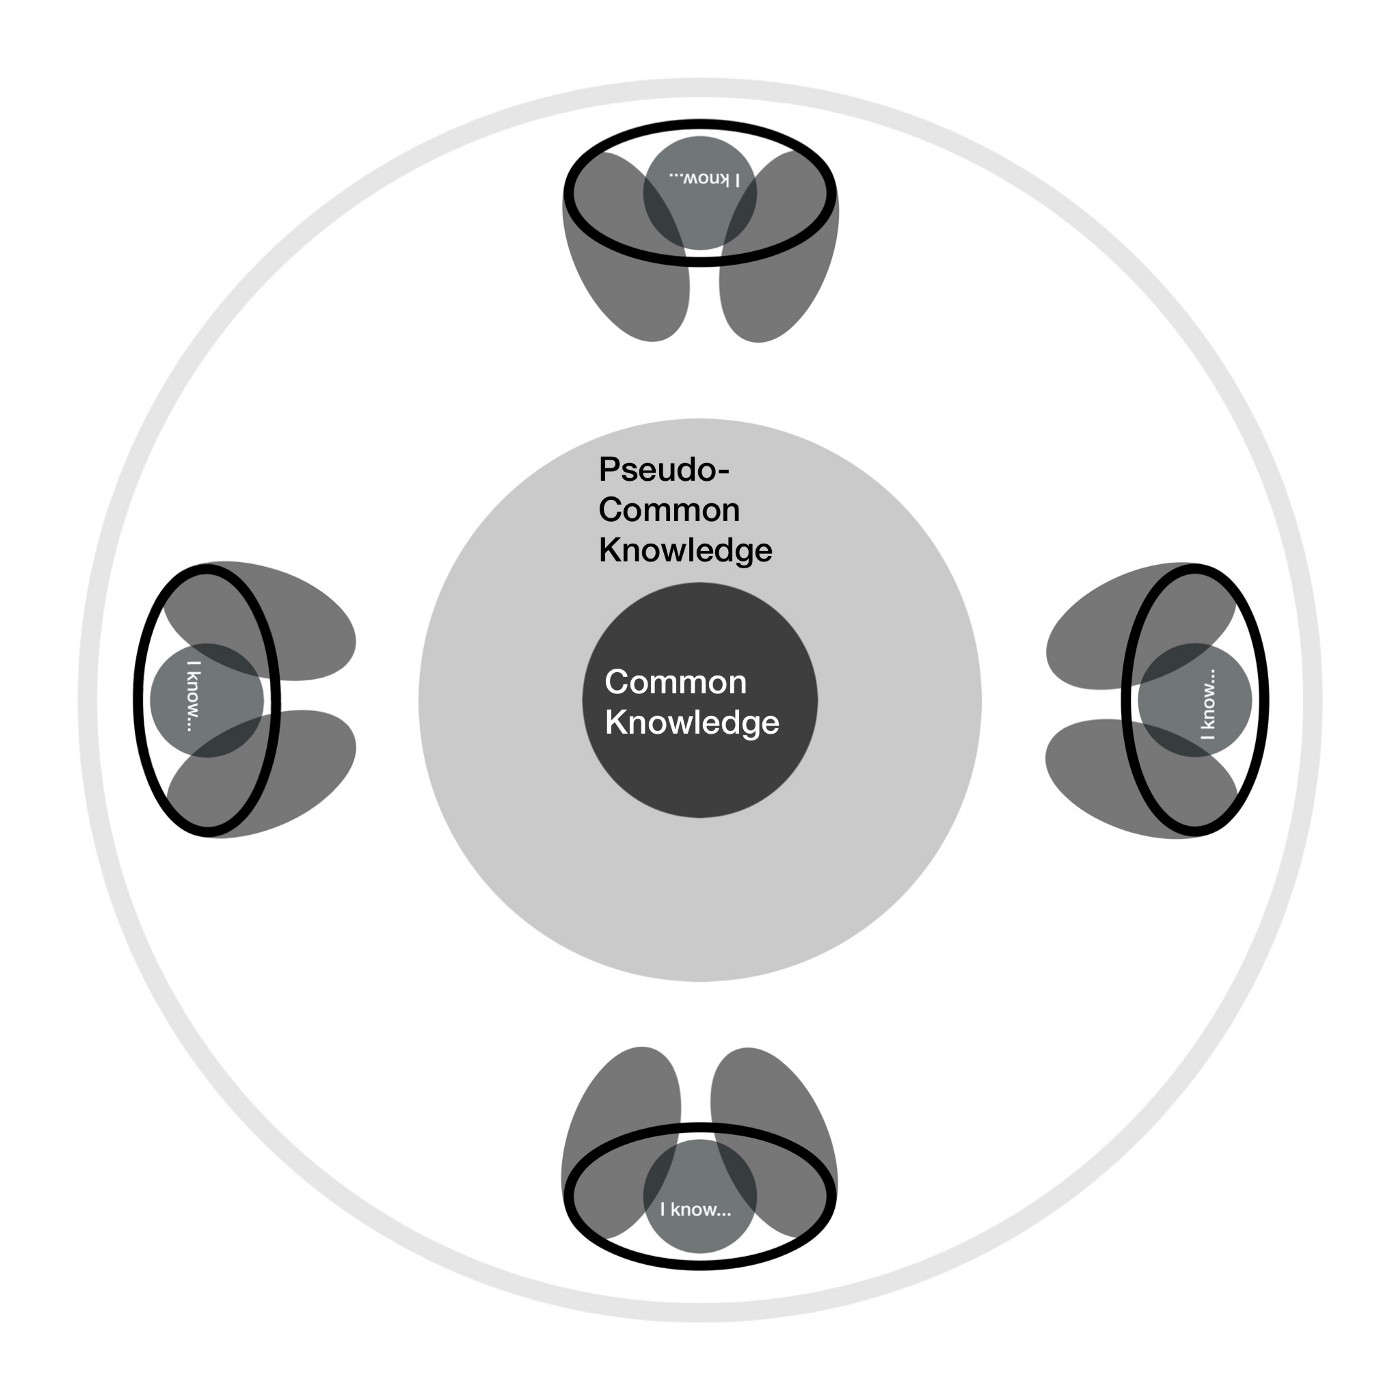 4 mini diagrams of people surrounding two circles a large one called pseudo-common knowledge and a small one common knowledge